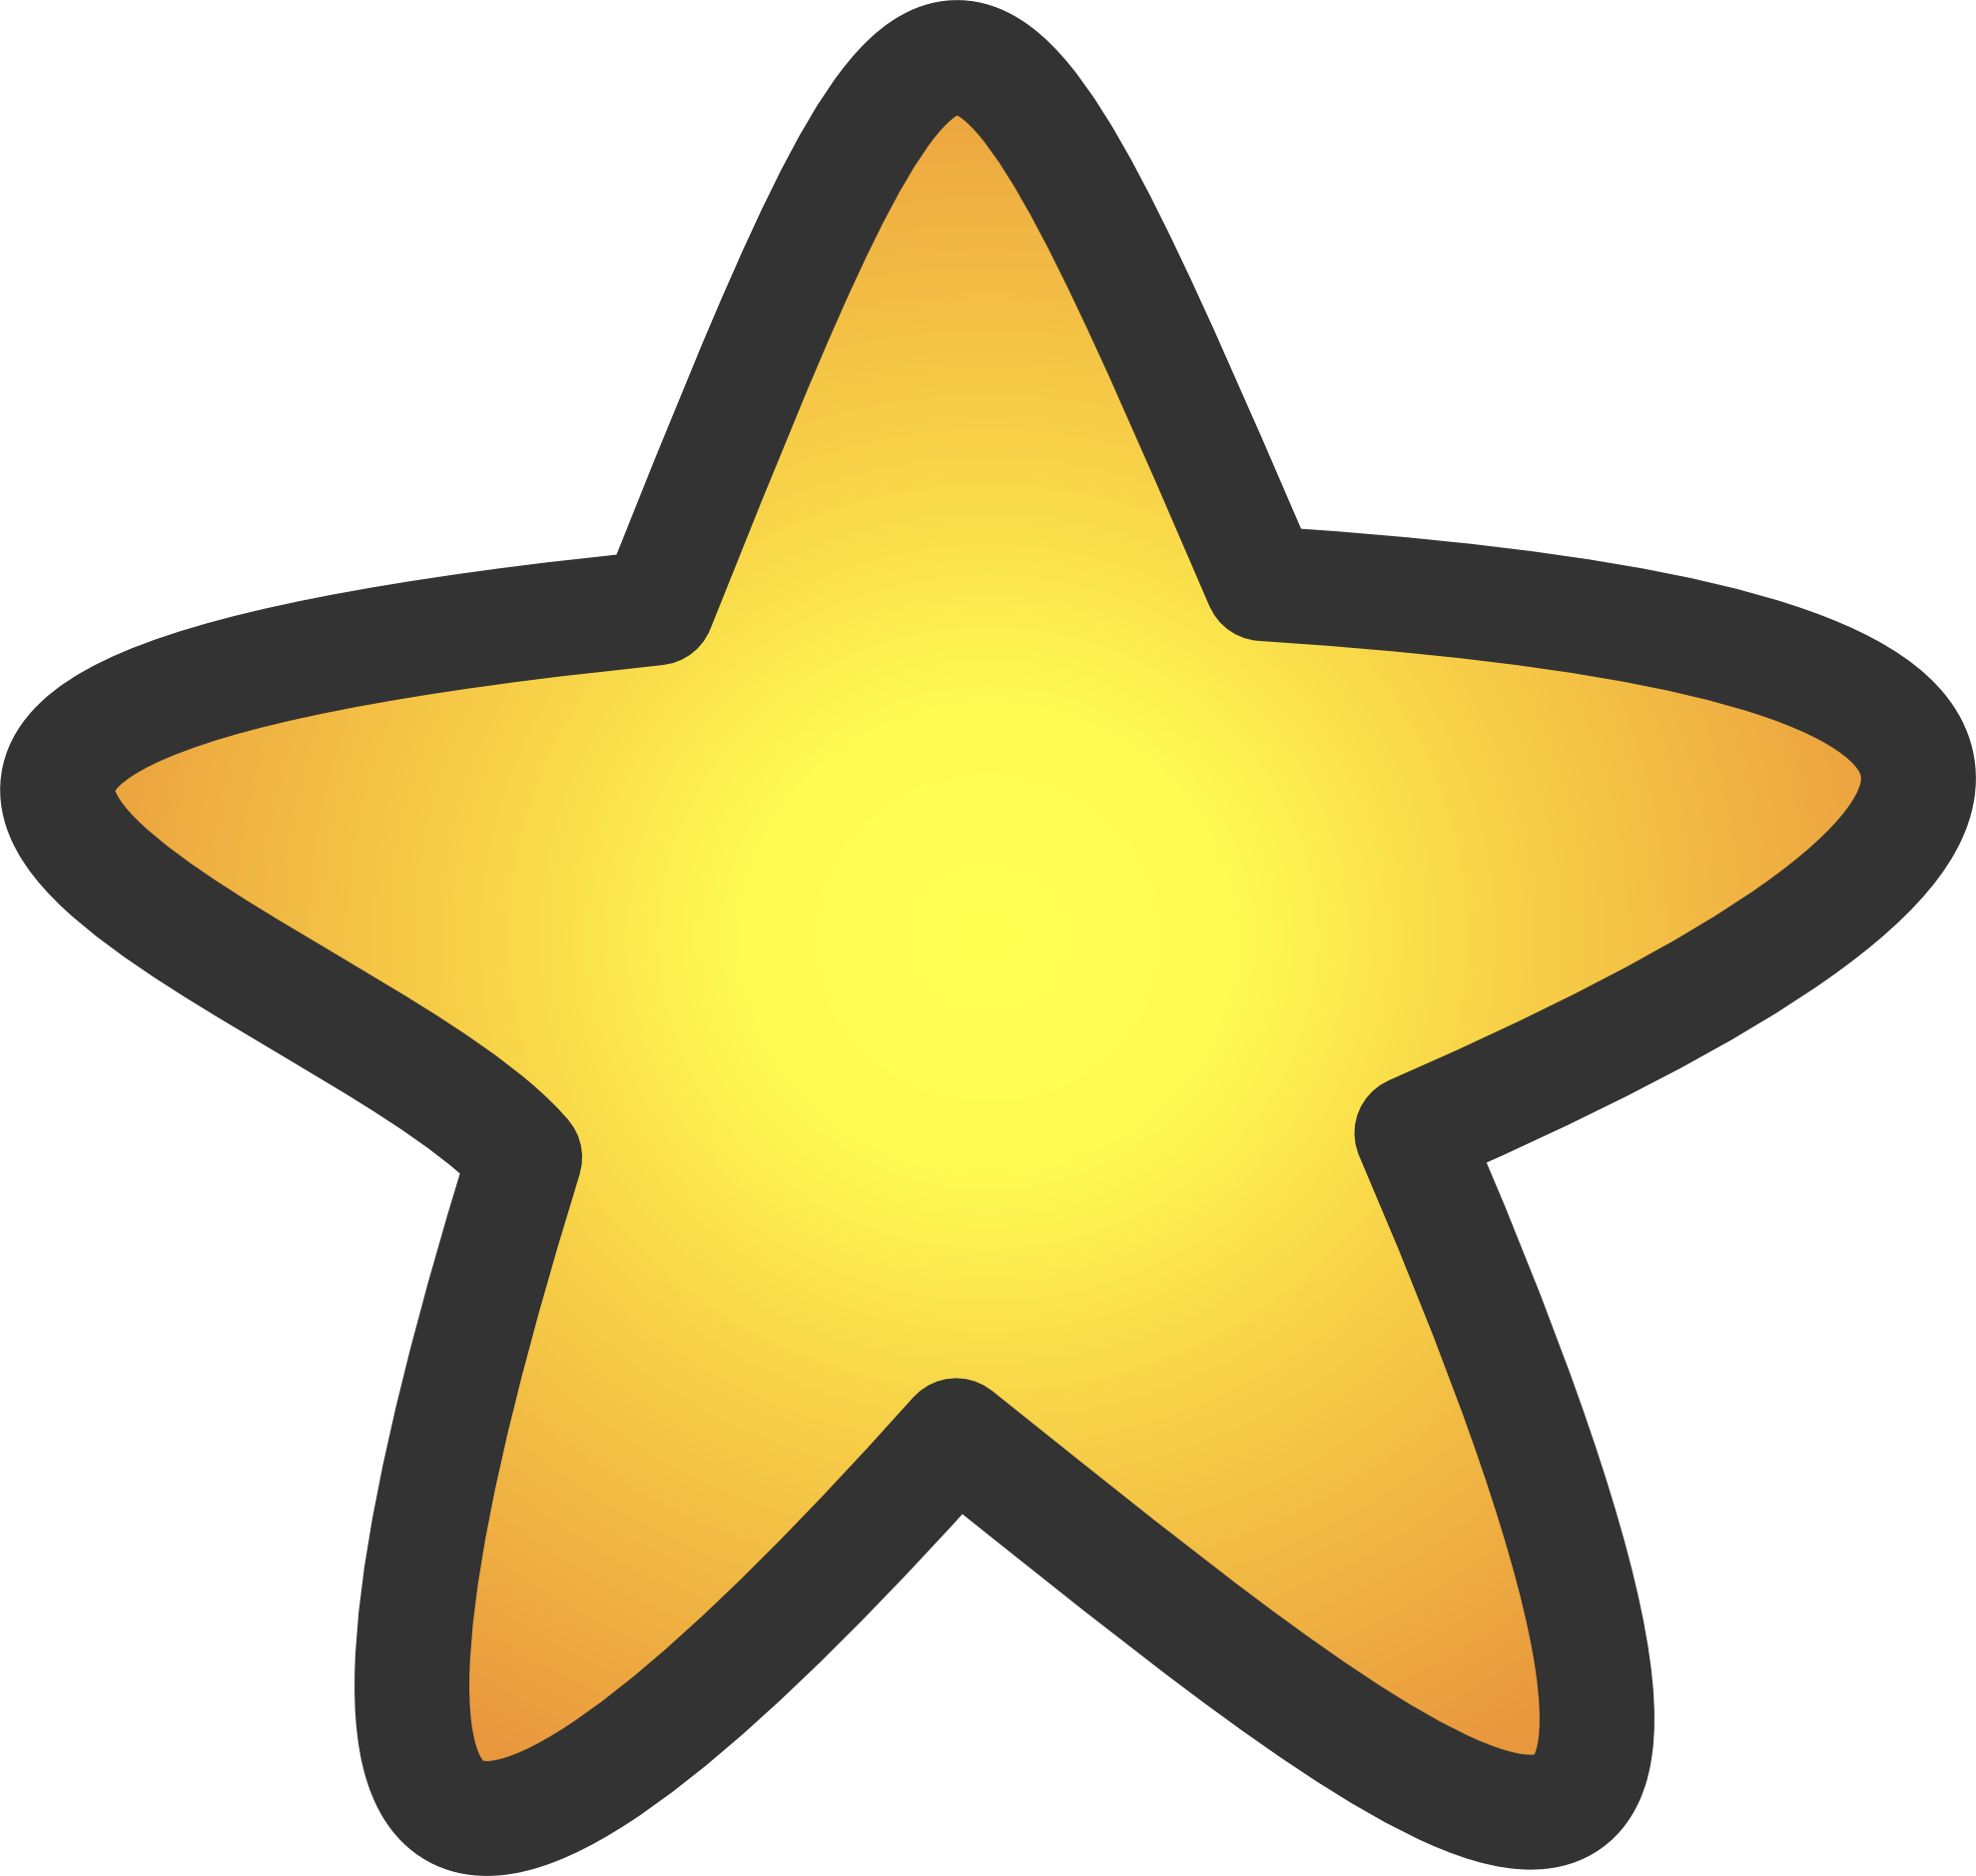 Clipart star images png black and white library Star Clipart | jokingart.com png black and white library